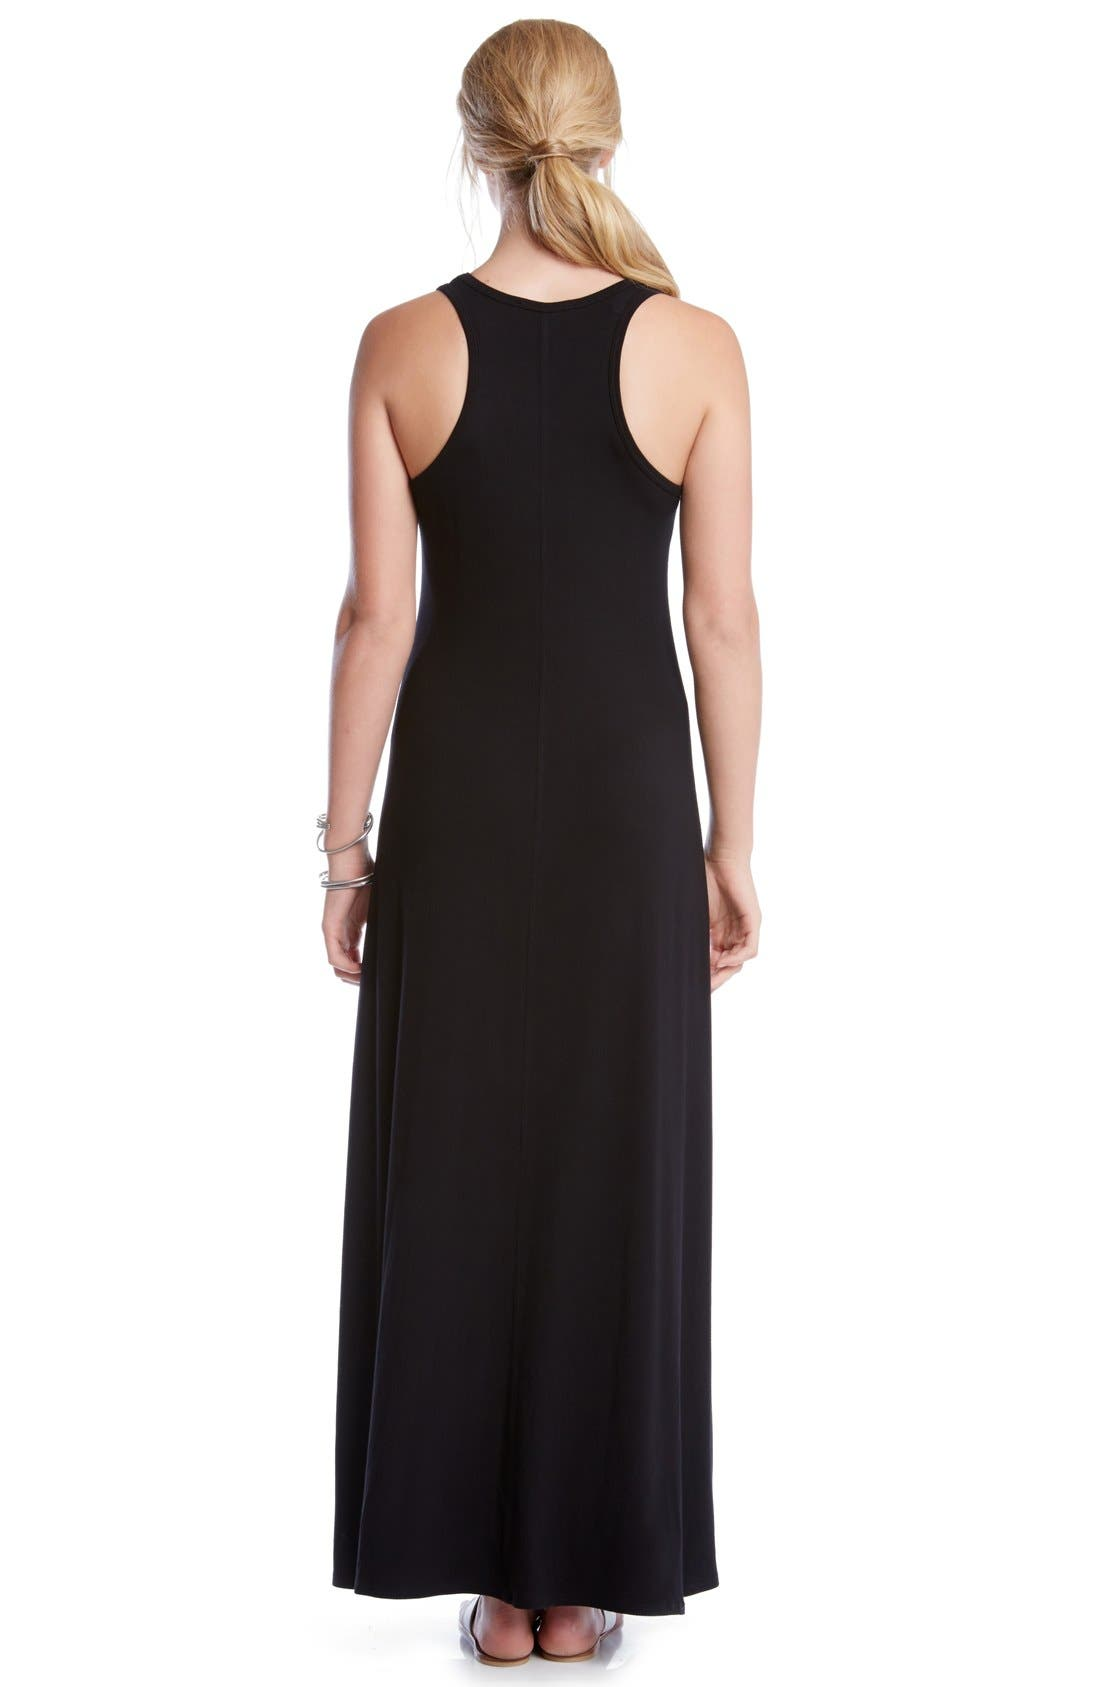 'Tasha' Racerback Jersey Maxi Dress,                             Alternate thumbnail 2, color,                             001